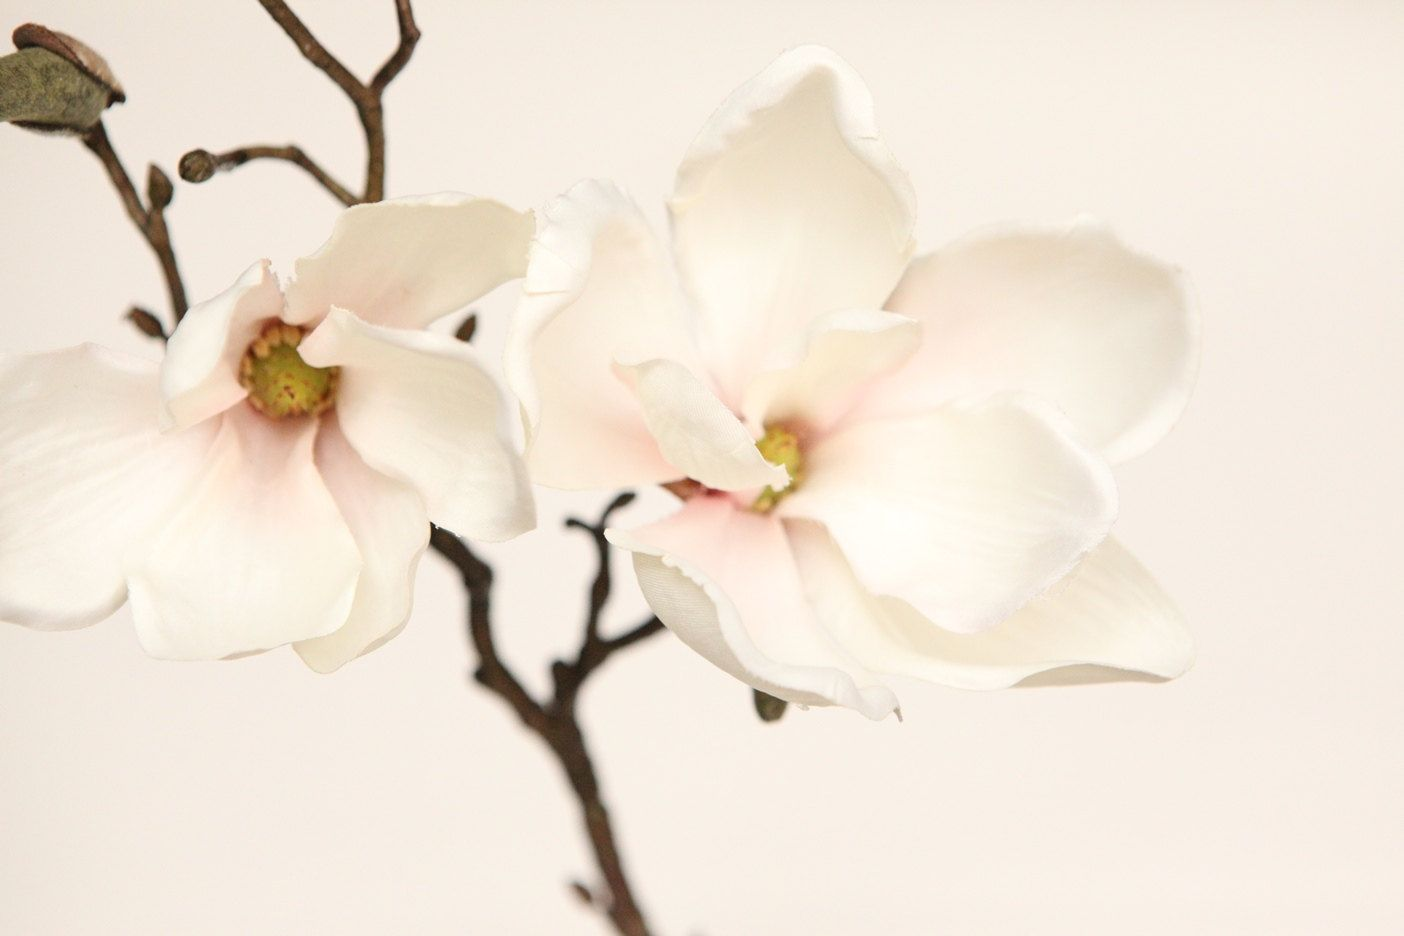 19 Magnolia Spray In White And Pink Blush Floral Etsy Silk Flowers Flowers For Sale Flower Spray